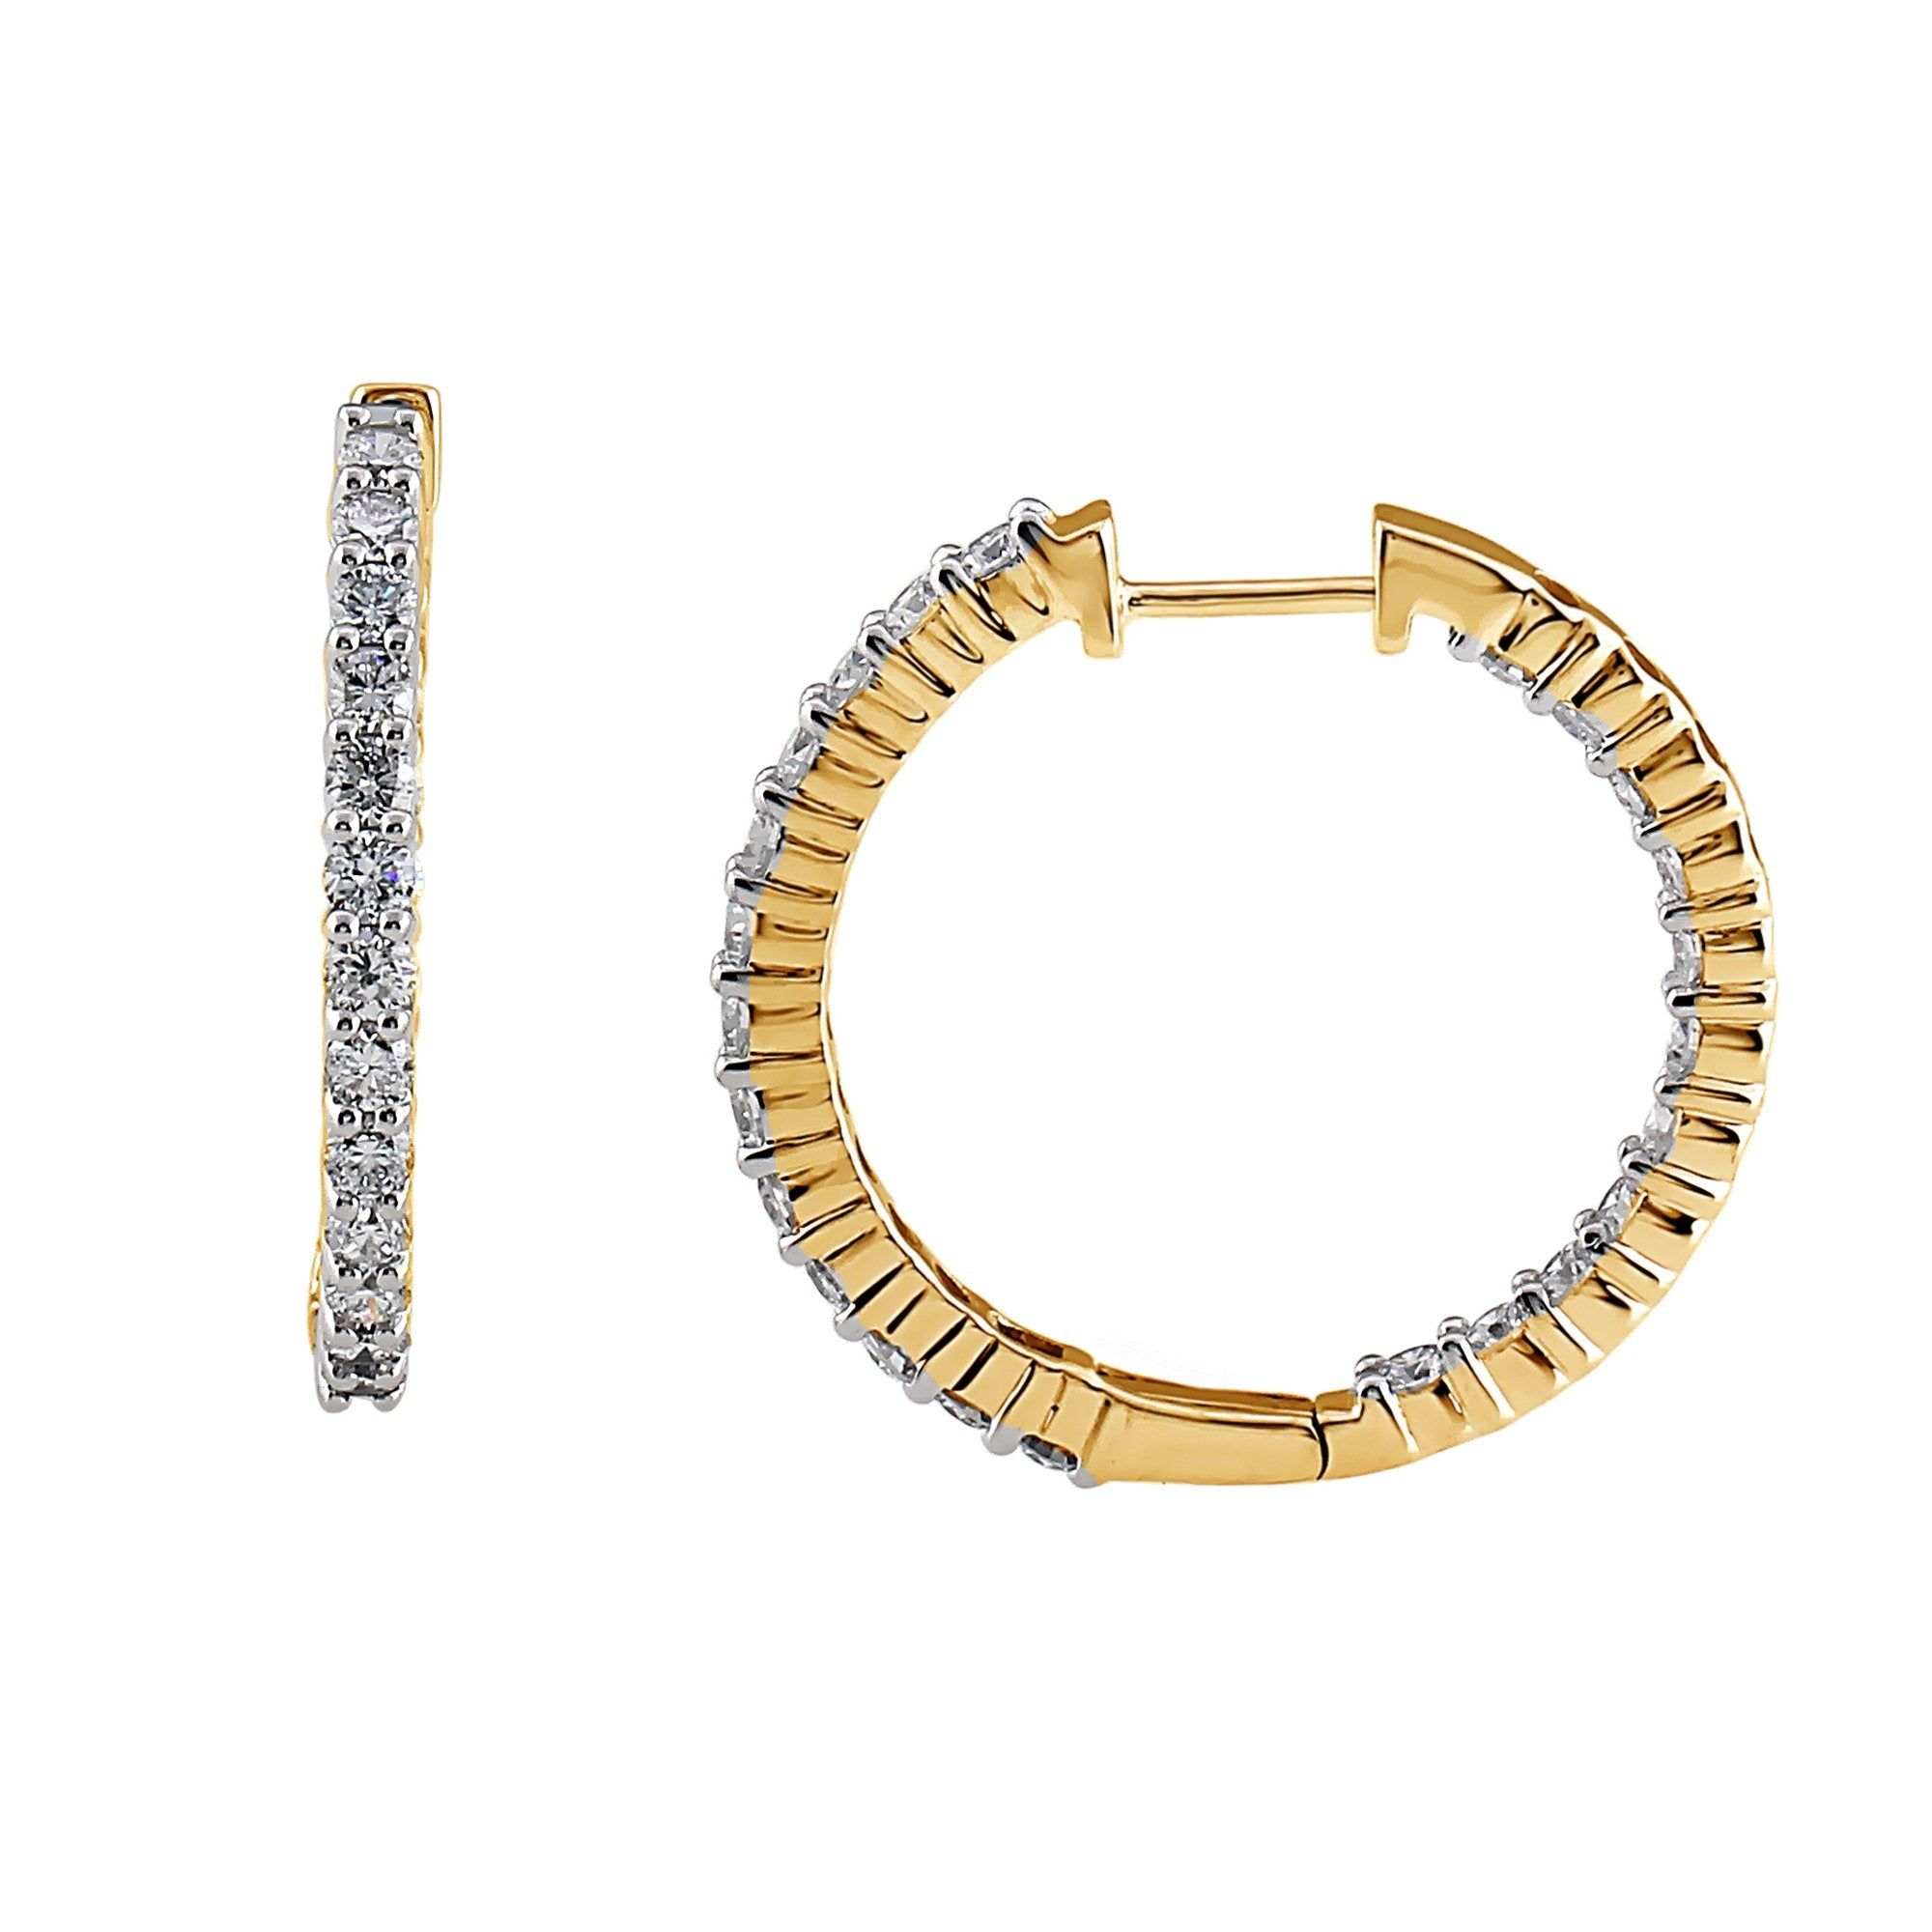 "2.00CTTW Lab Grown Diamond Inside Out Hoops in 14K Gold, 1"" Diameter"